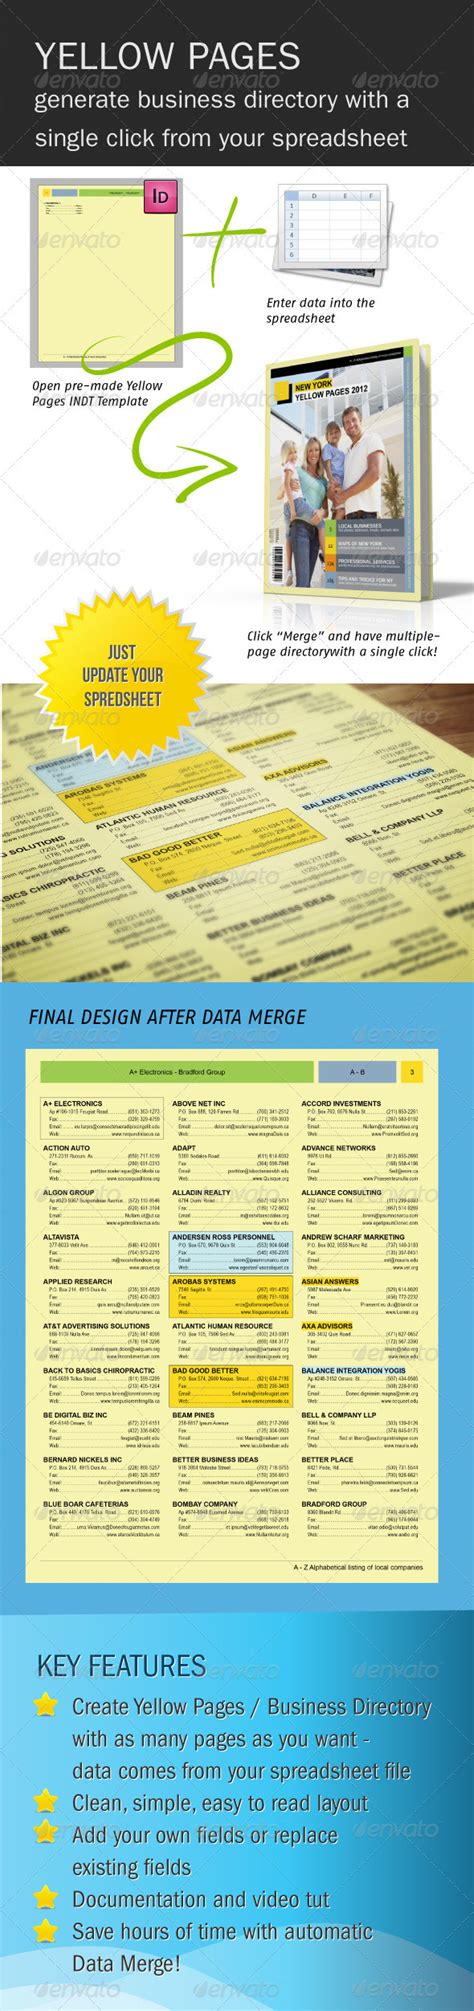 Download The Template Directory A5 Psd 187 Maydesk Com Yellow Pages Template